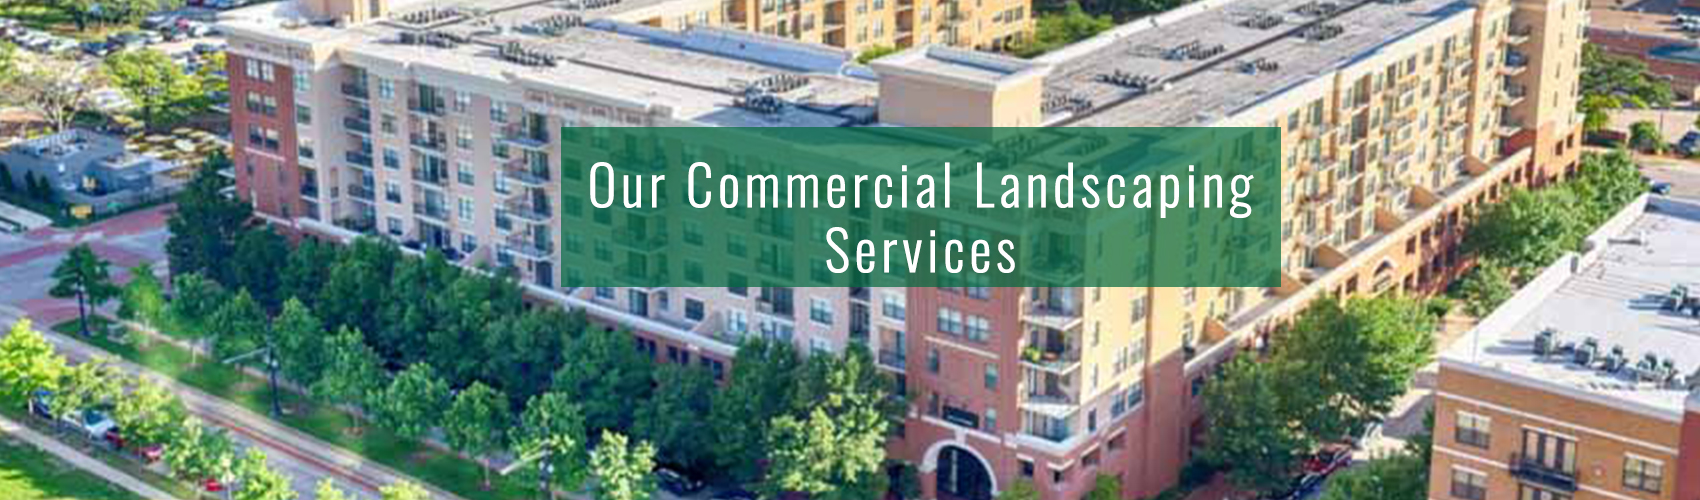 Complete Landscaping Service - Our Services